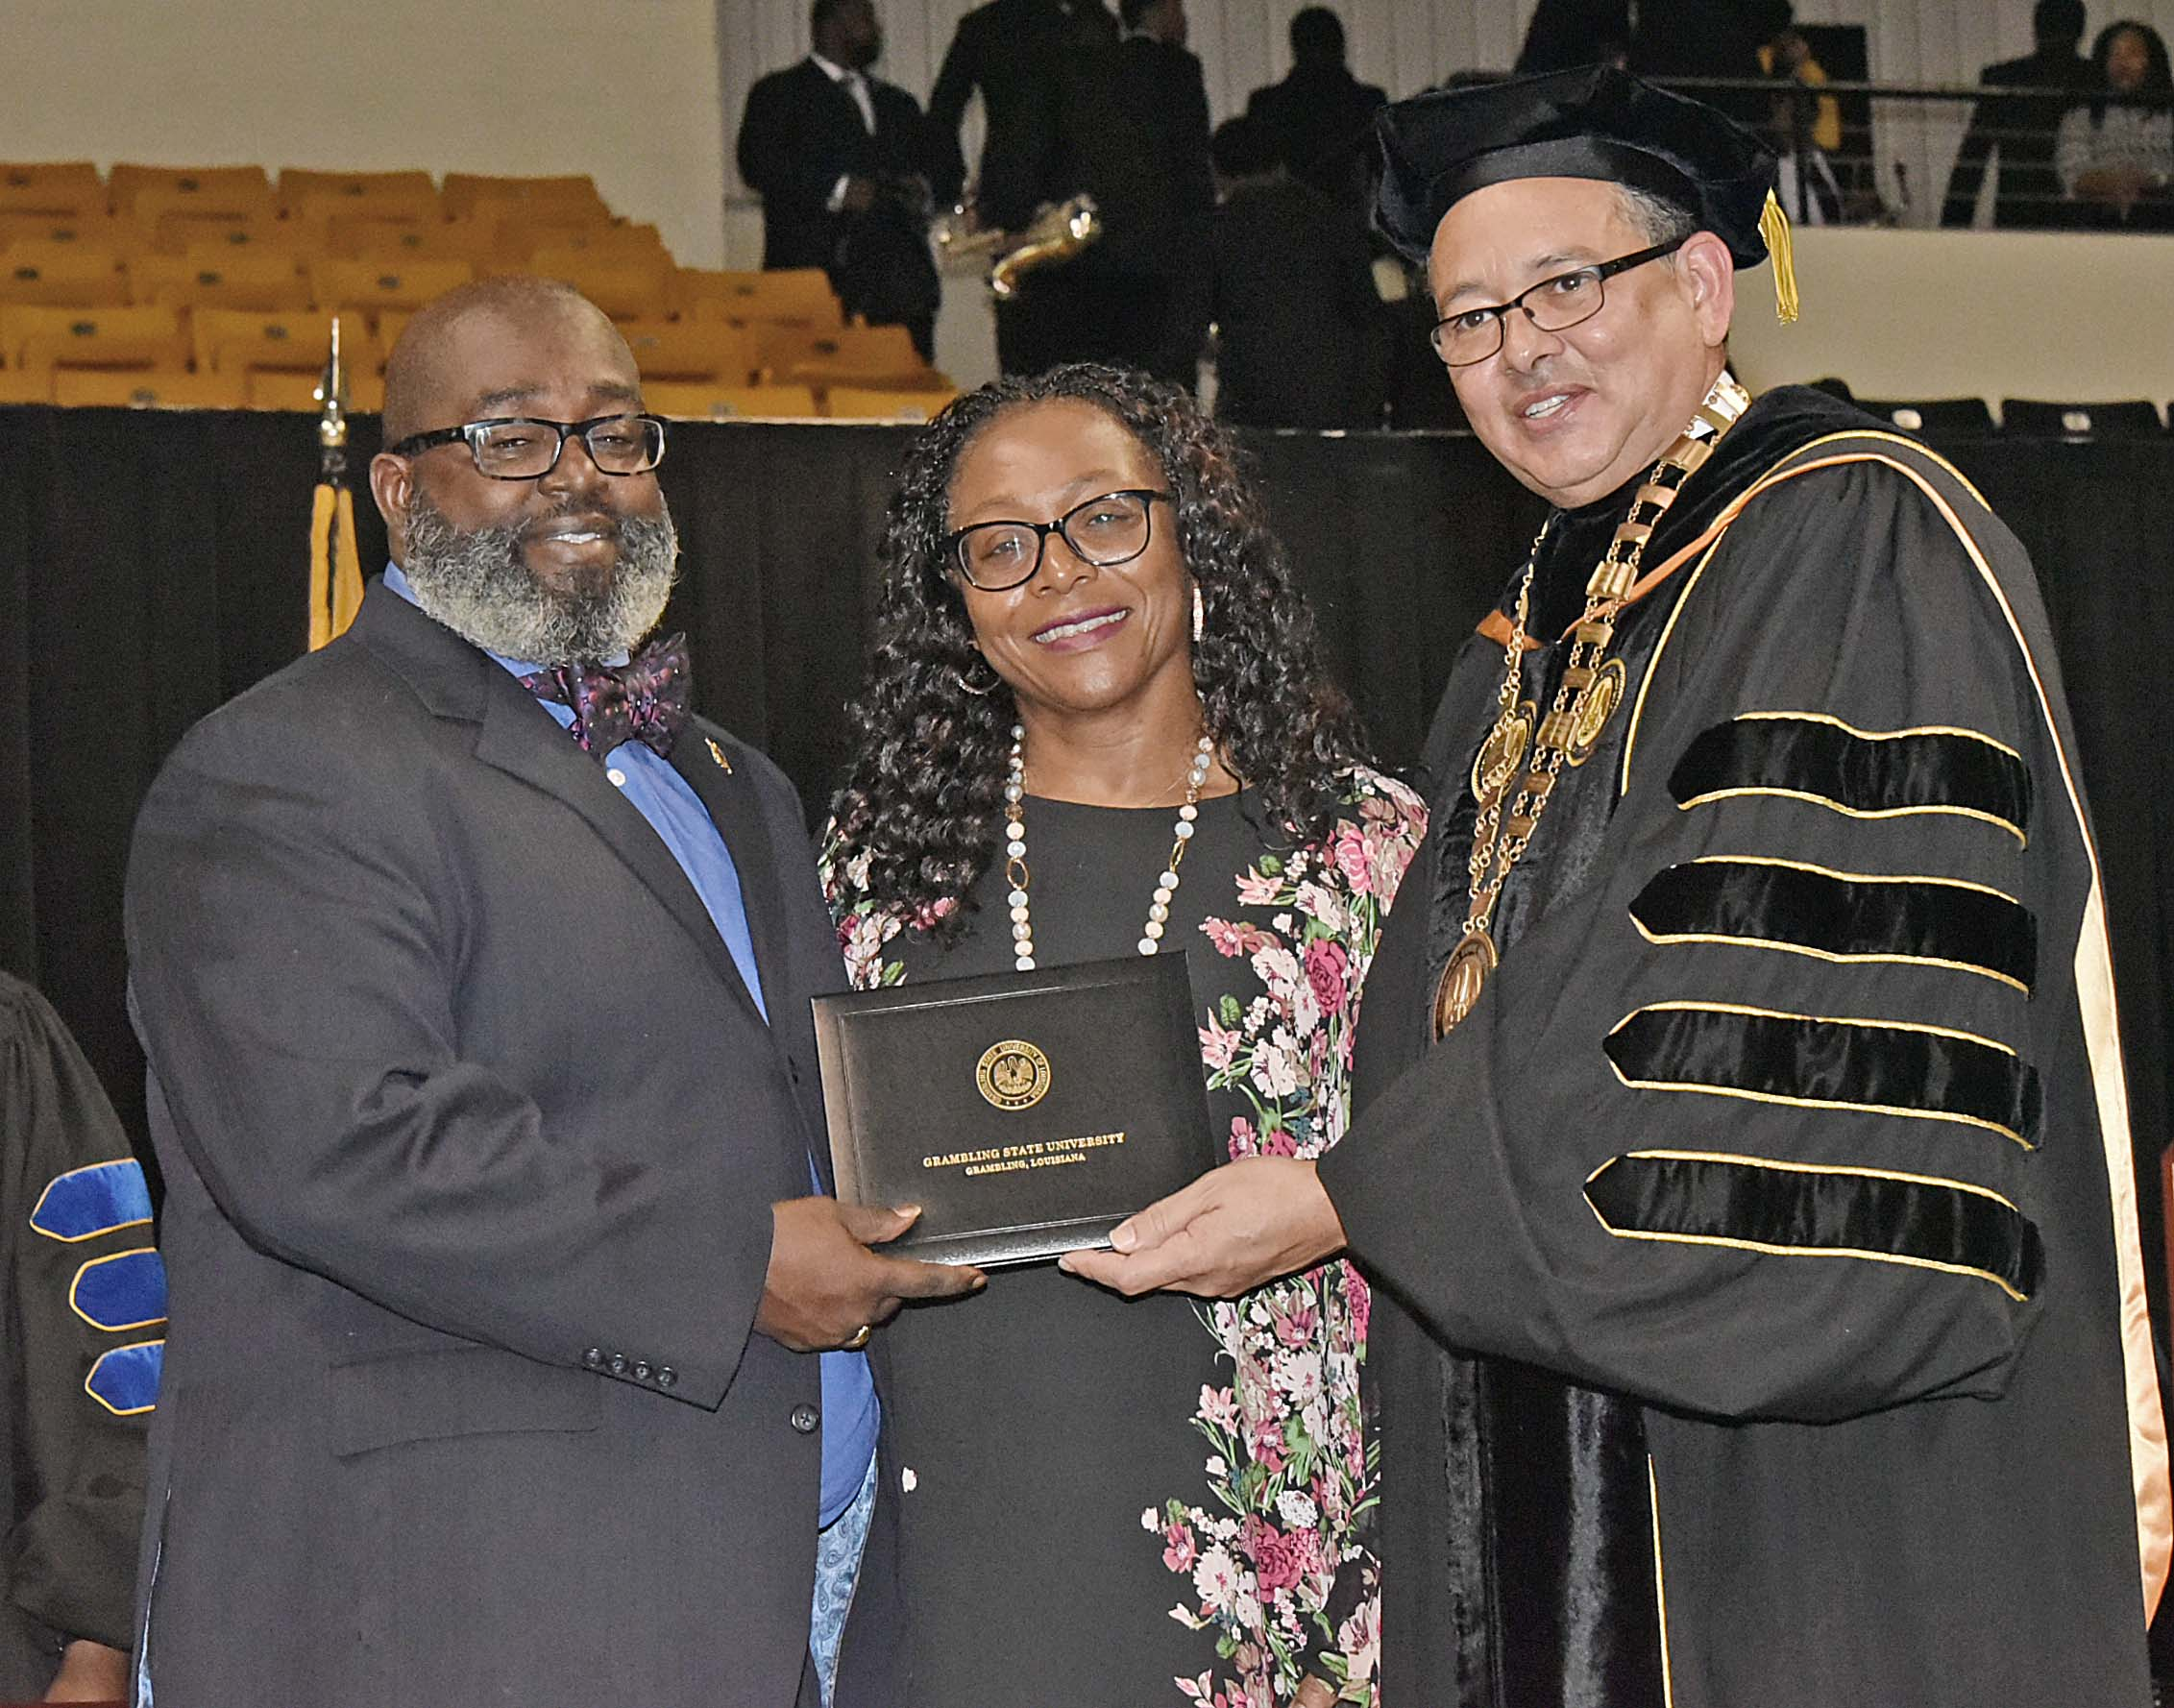 posthumous degree upon Alexis Johnson (parents pictured)